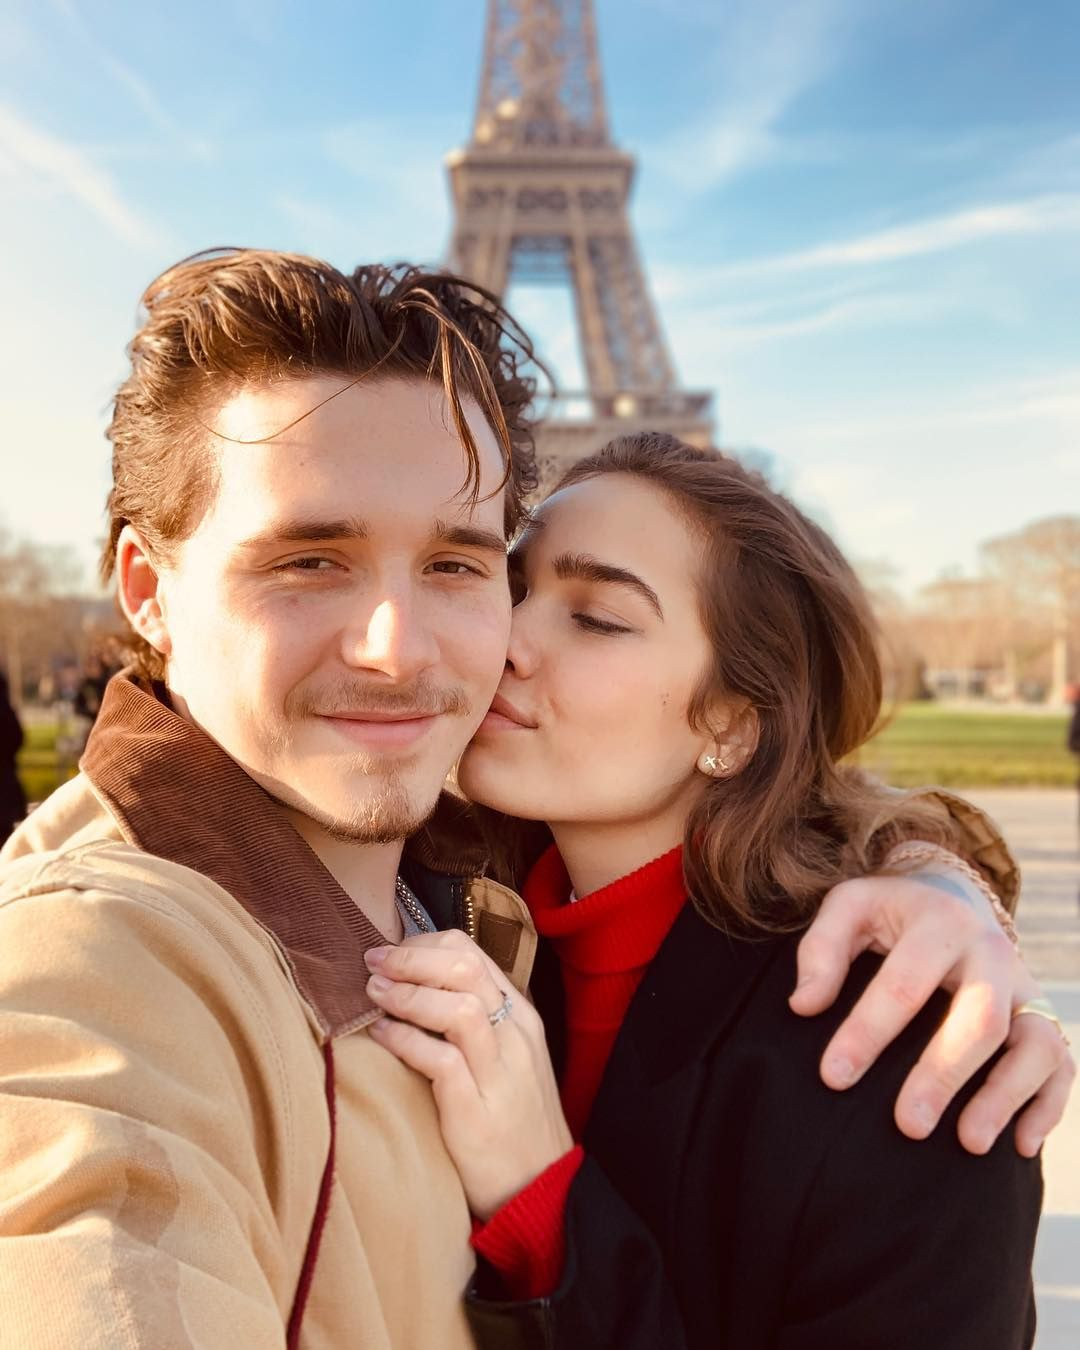 Image may contain: Brooklyn Beckham and Hana Cross, Brooklyn Beckham, Hana Cross, relationship, together, split, breakup, reason, argument, Paris, Valentine's Day, official, timeline, dating, drama, Instagram, Steeple, Spire, Architecture, Building, Tower, Person, Human